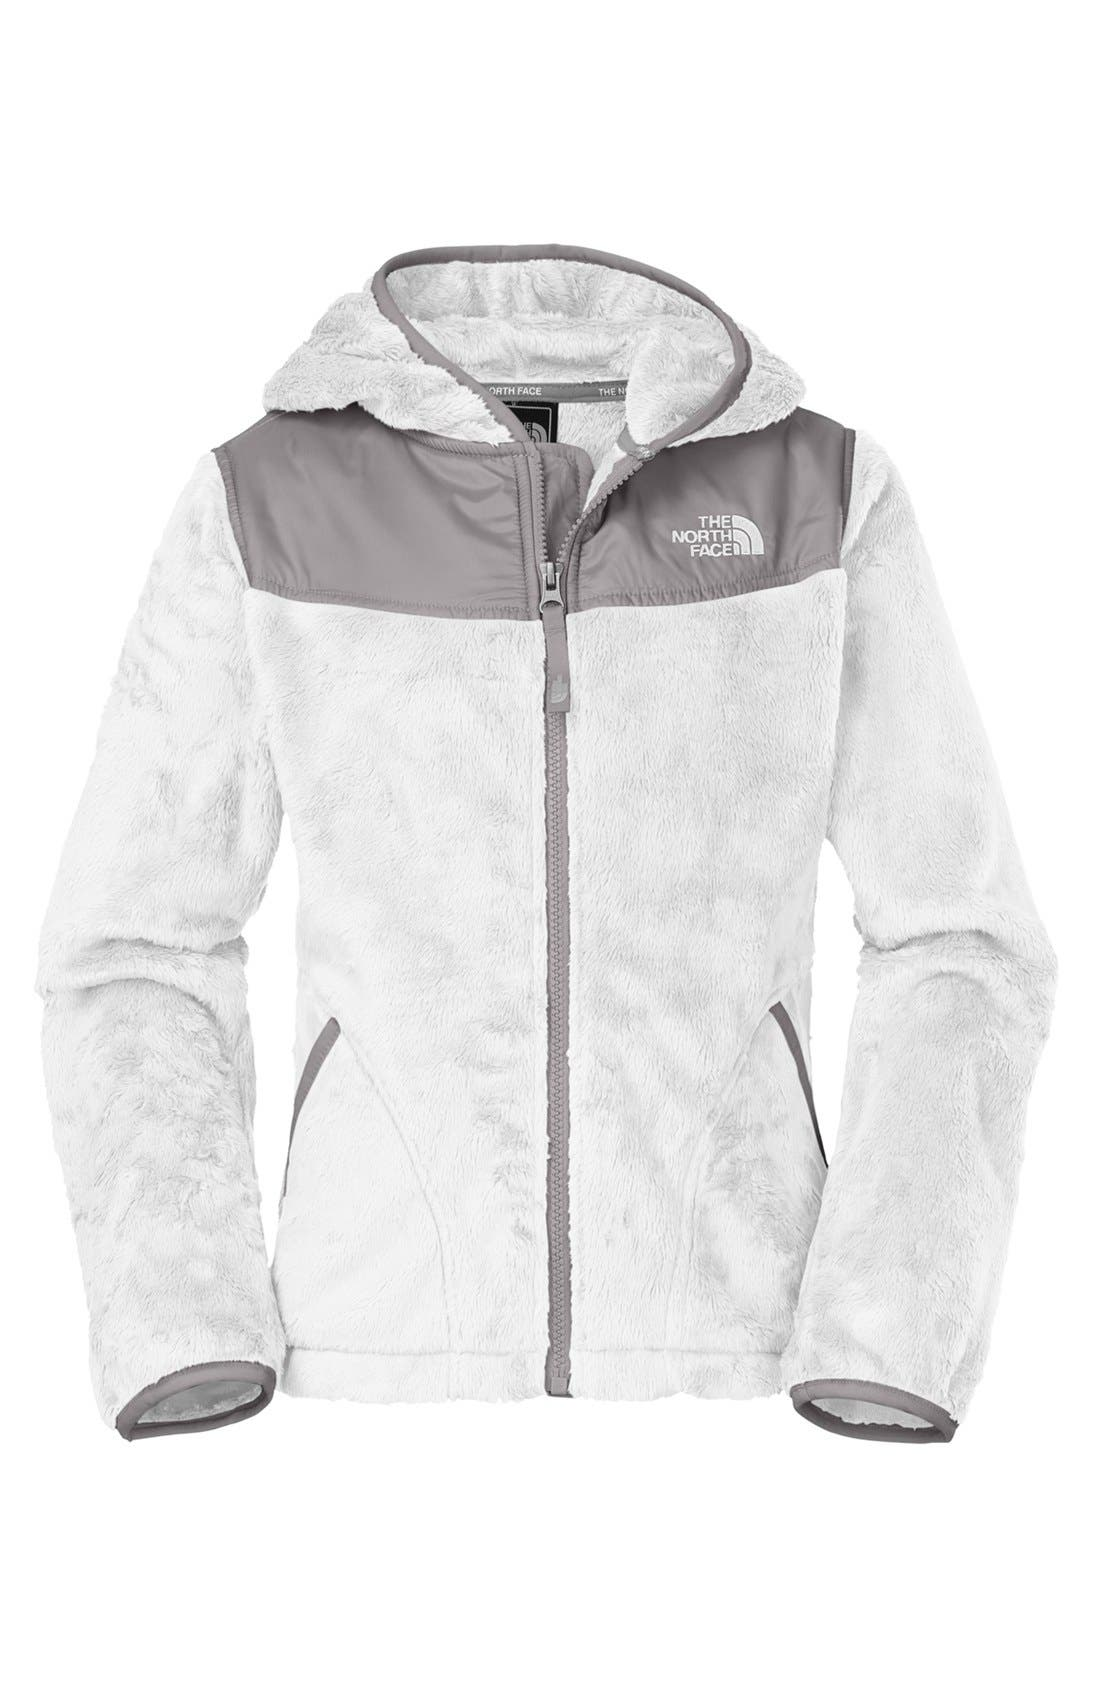 Alternate Image 1 Selected - The North Face 'Oso' Hooded Fleece Jacket (Little Girls)